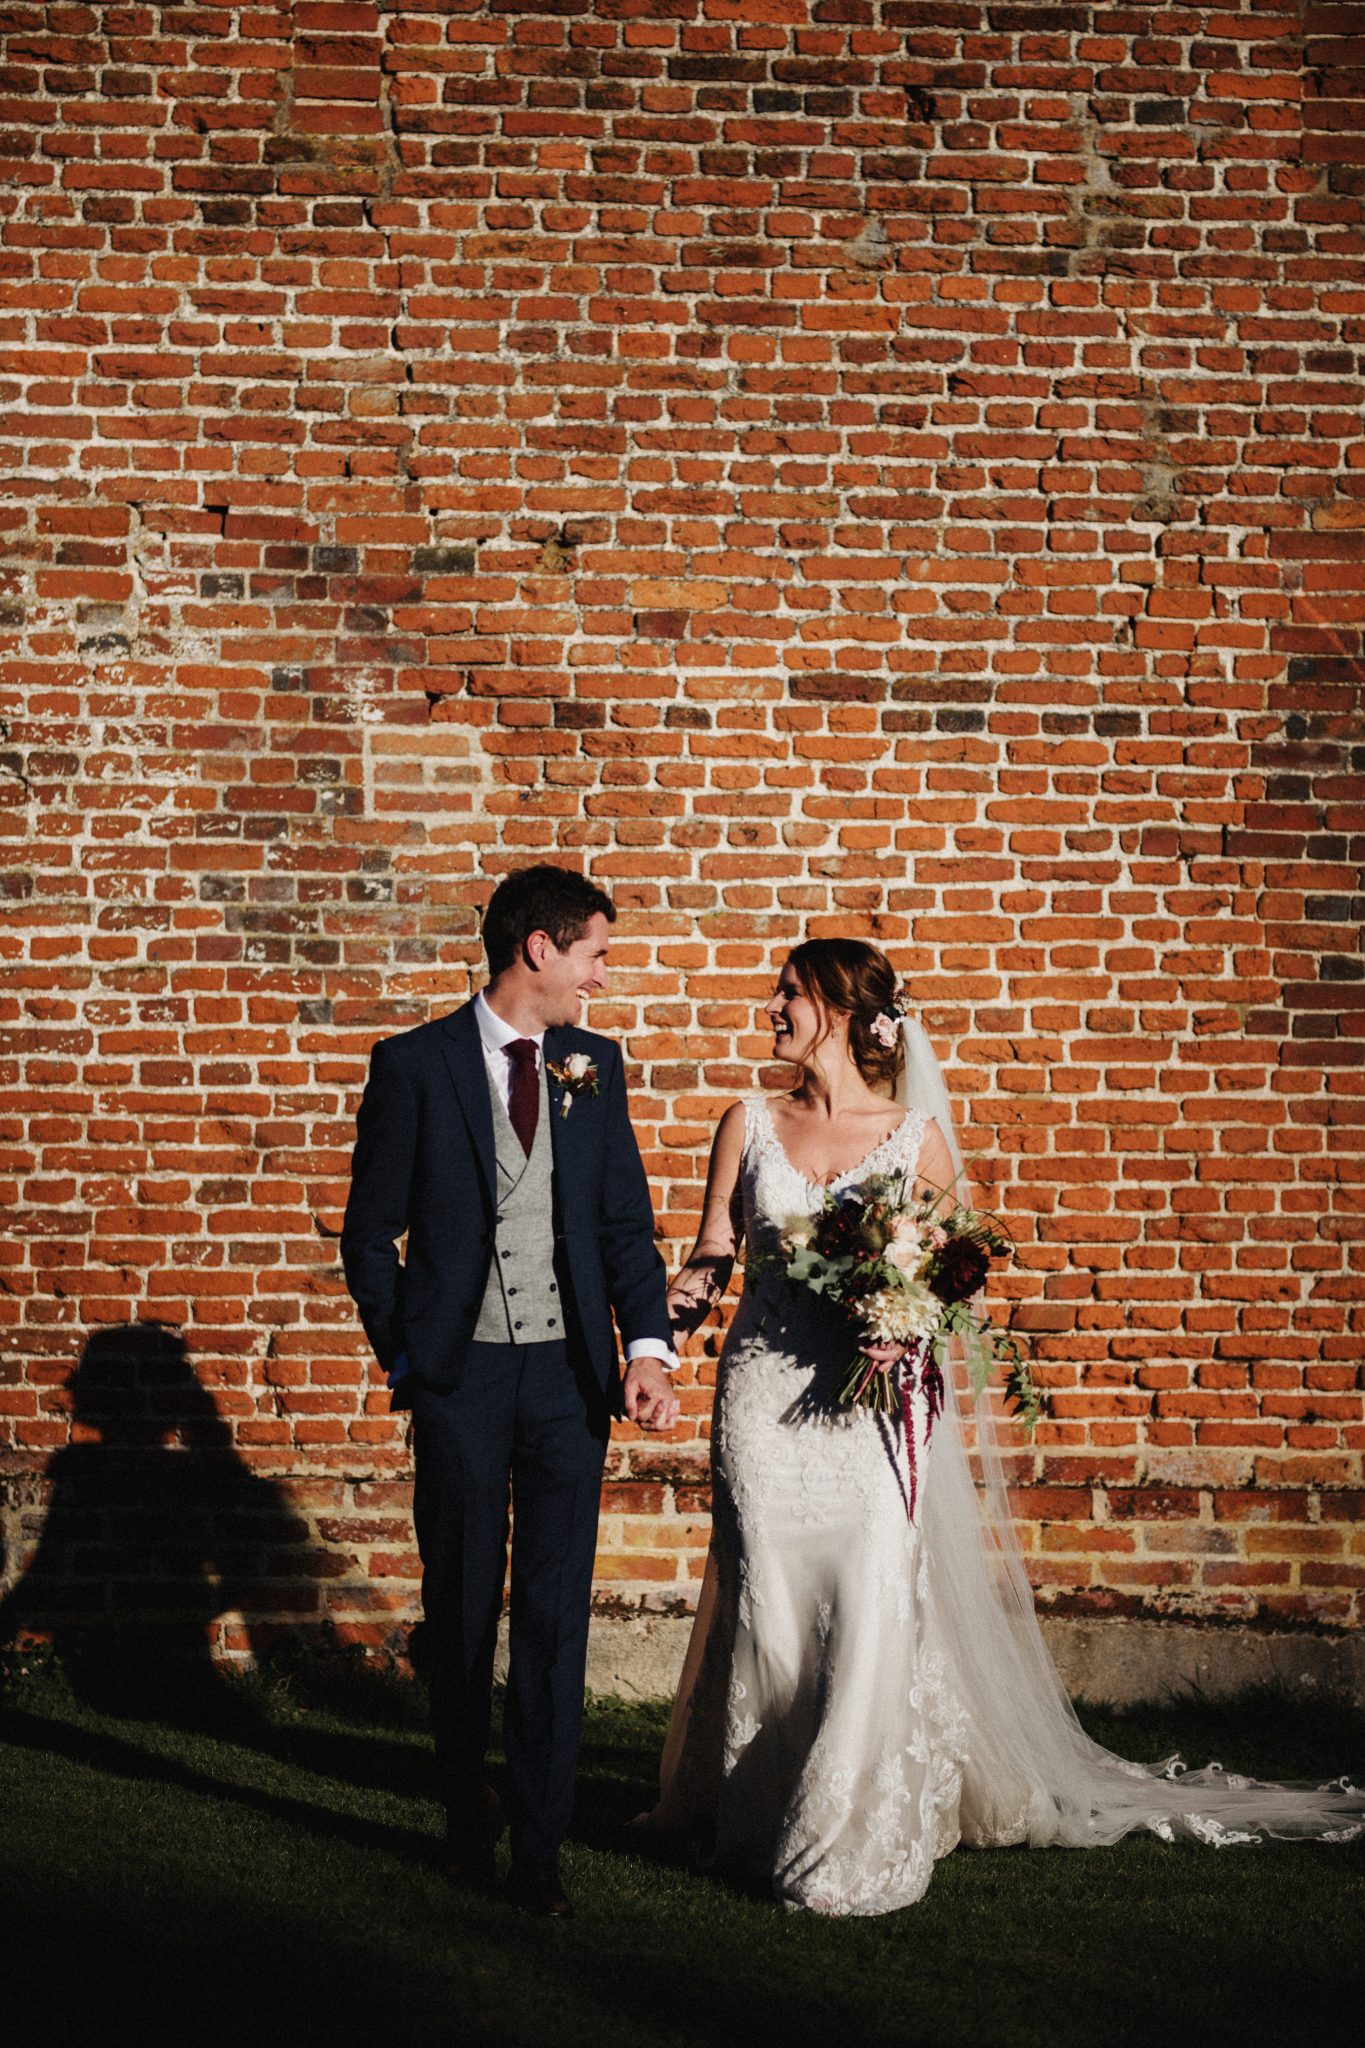 Bride and groom laugh in the sunshine next to the red brick wall